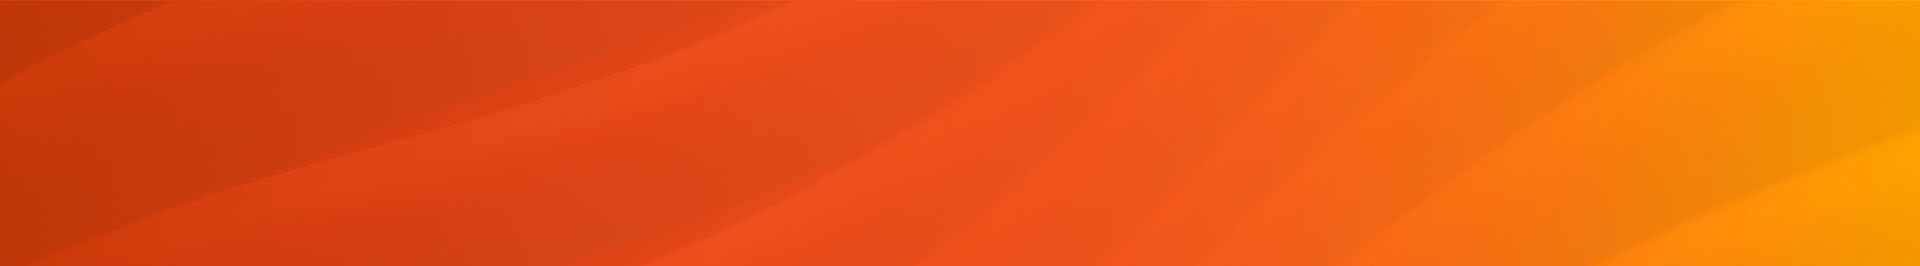 Red to Orange Decorative Background Image